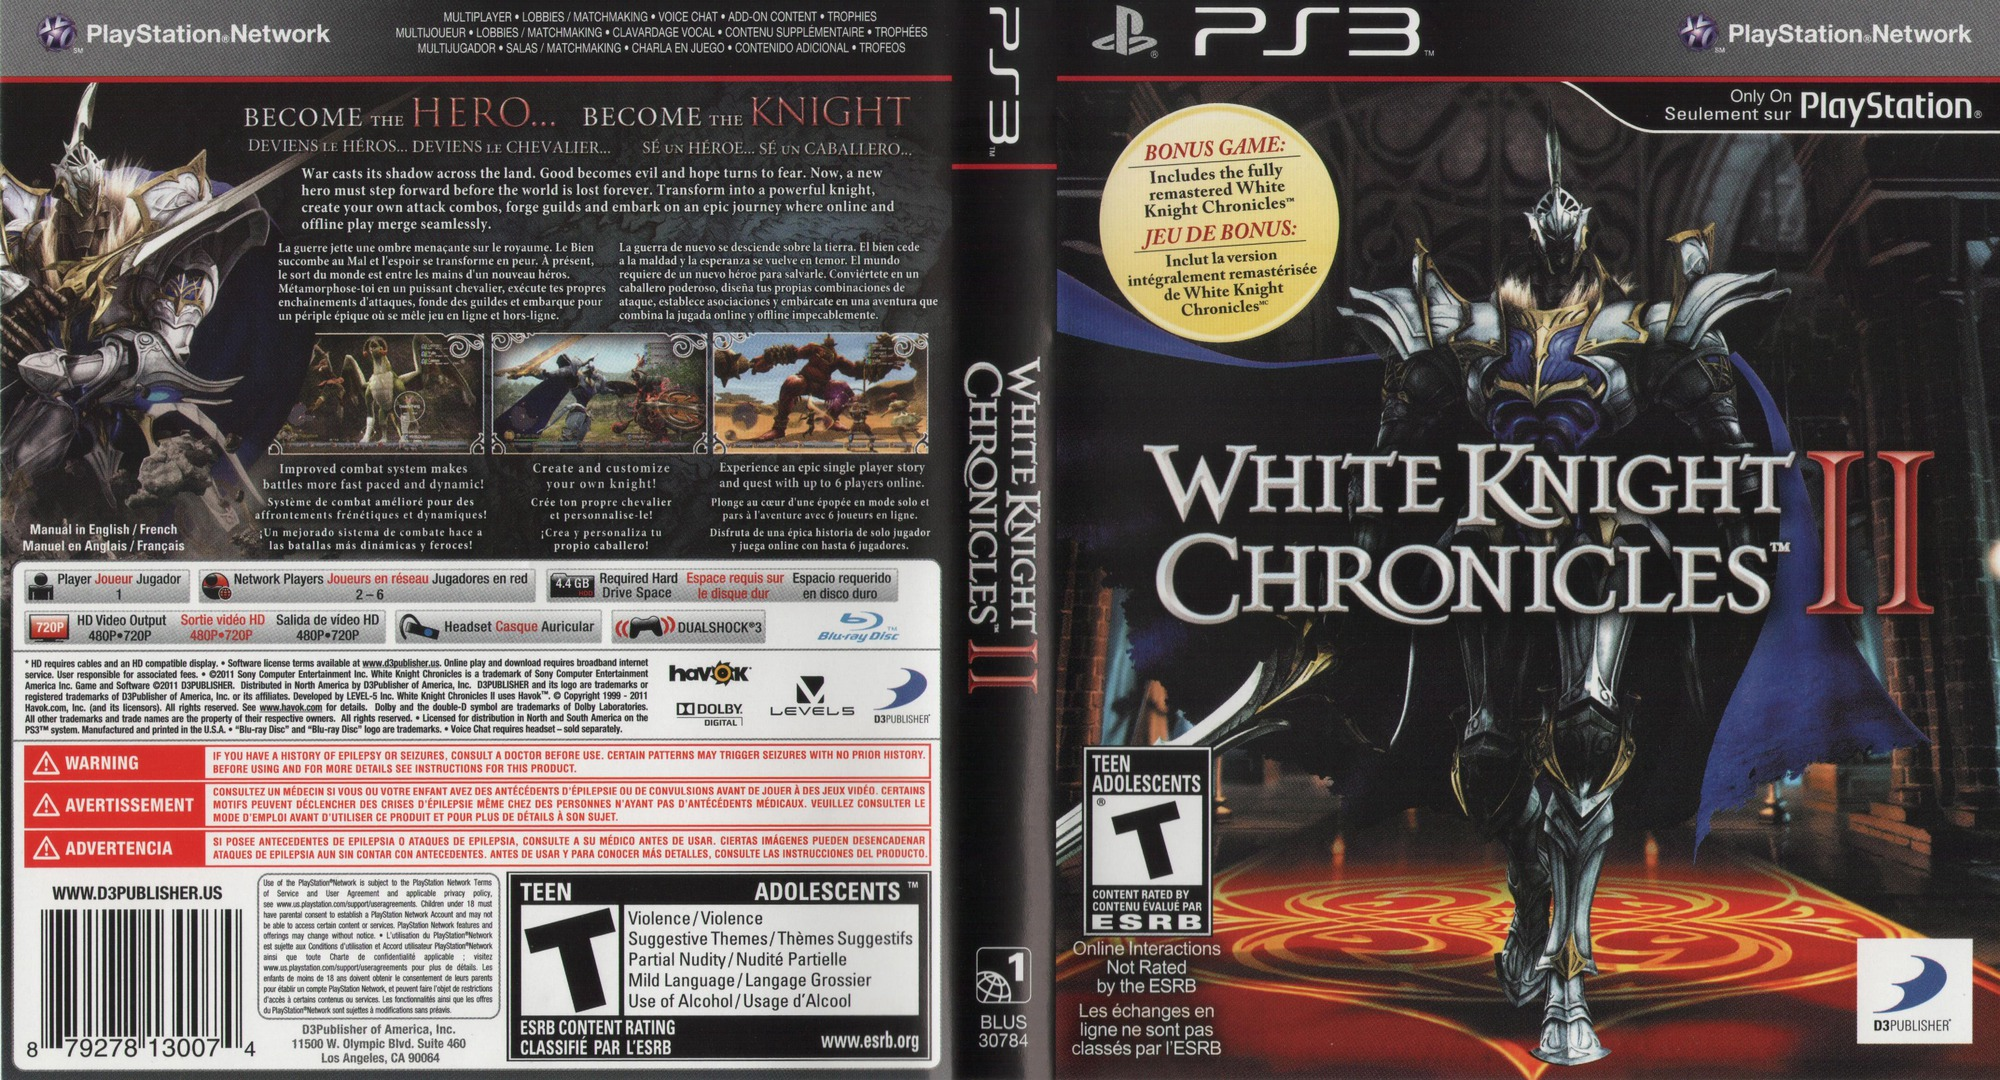 White Knight Chronicles II PS3 coverfullHQ (BLUS30784)